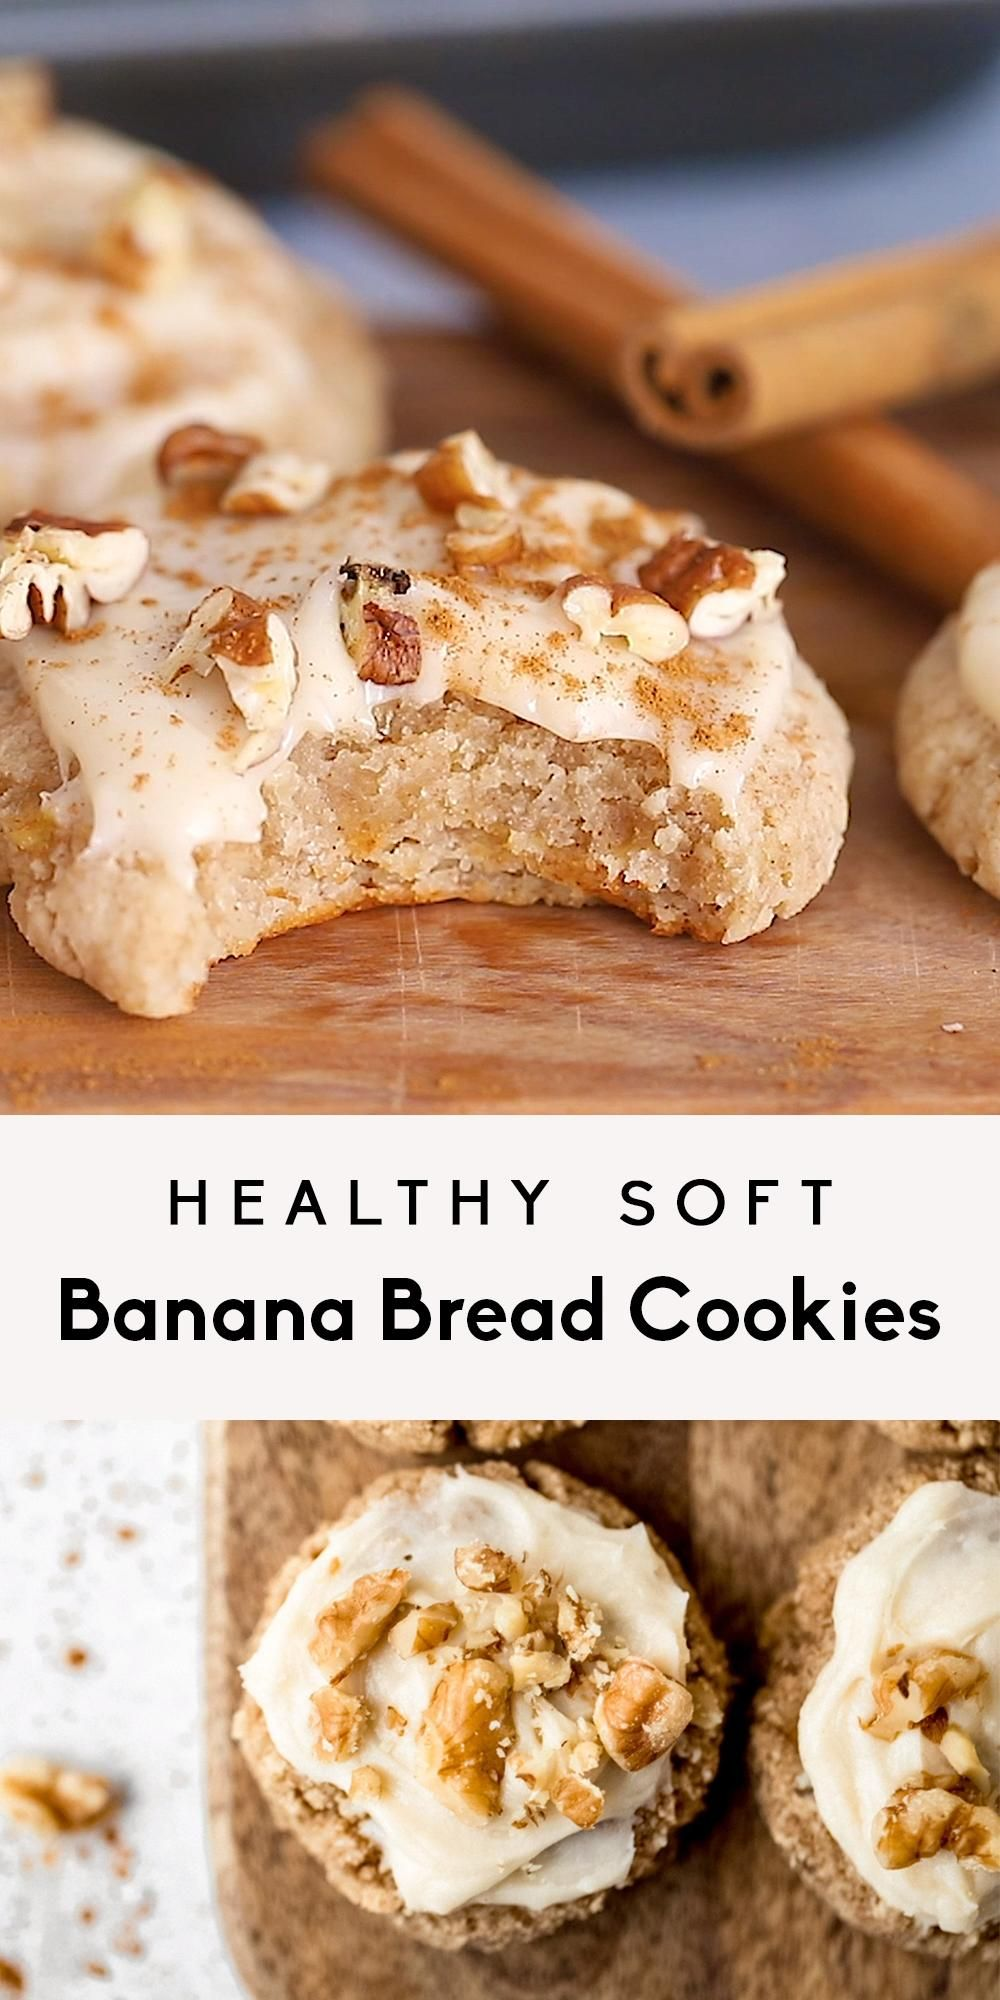 Healthy Soft Banana Bread Cookies